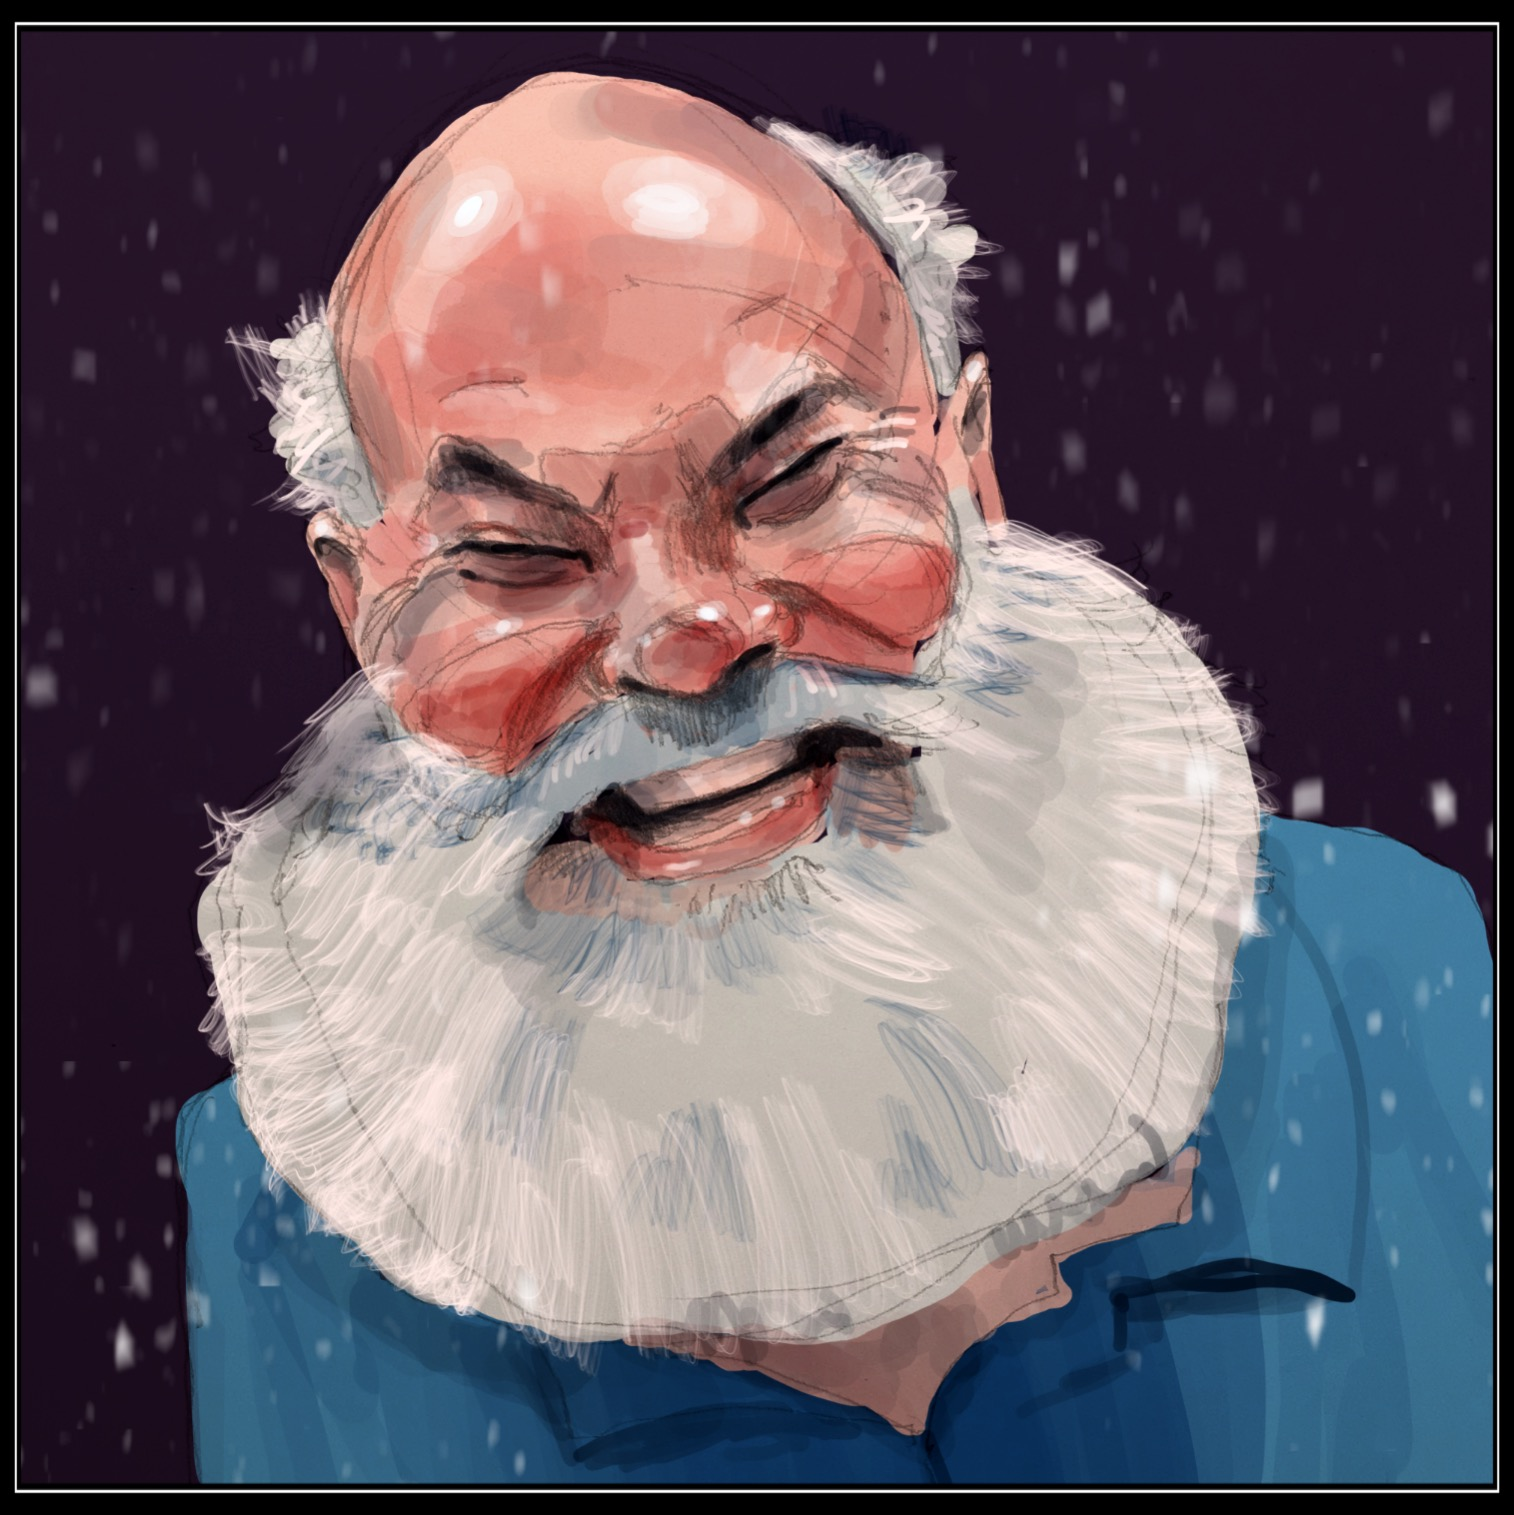 Dr. Andrew Weil; physician